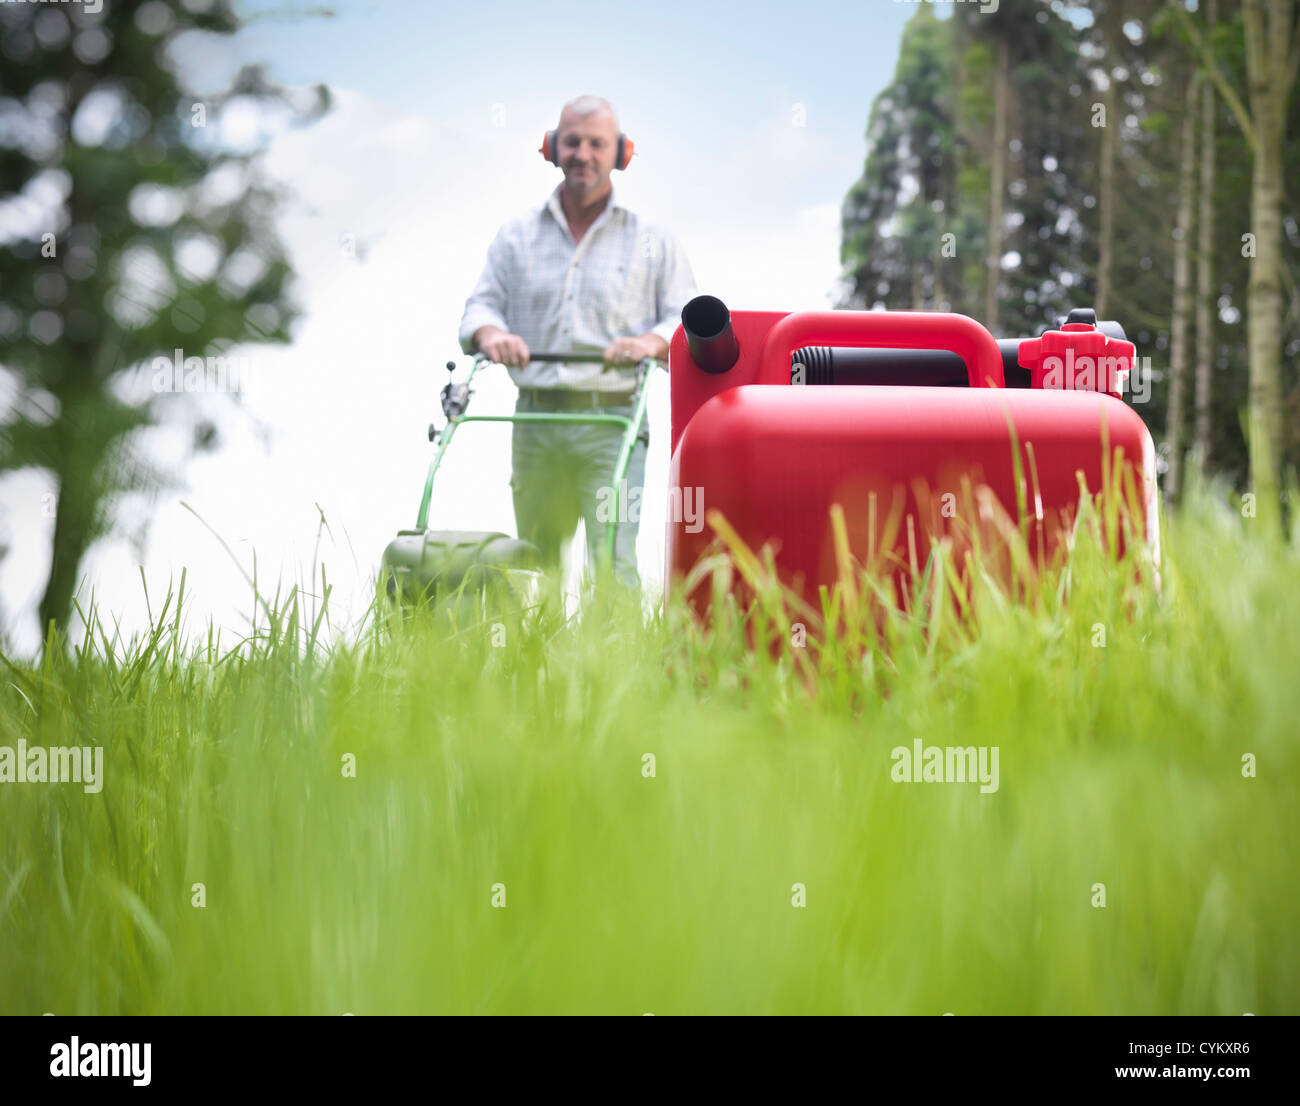 Can of gasoline on grassy lawn - Stock Image